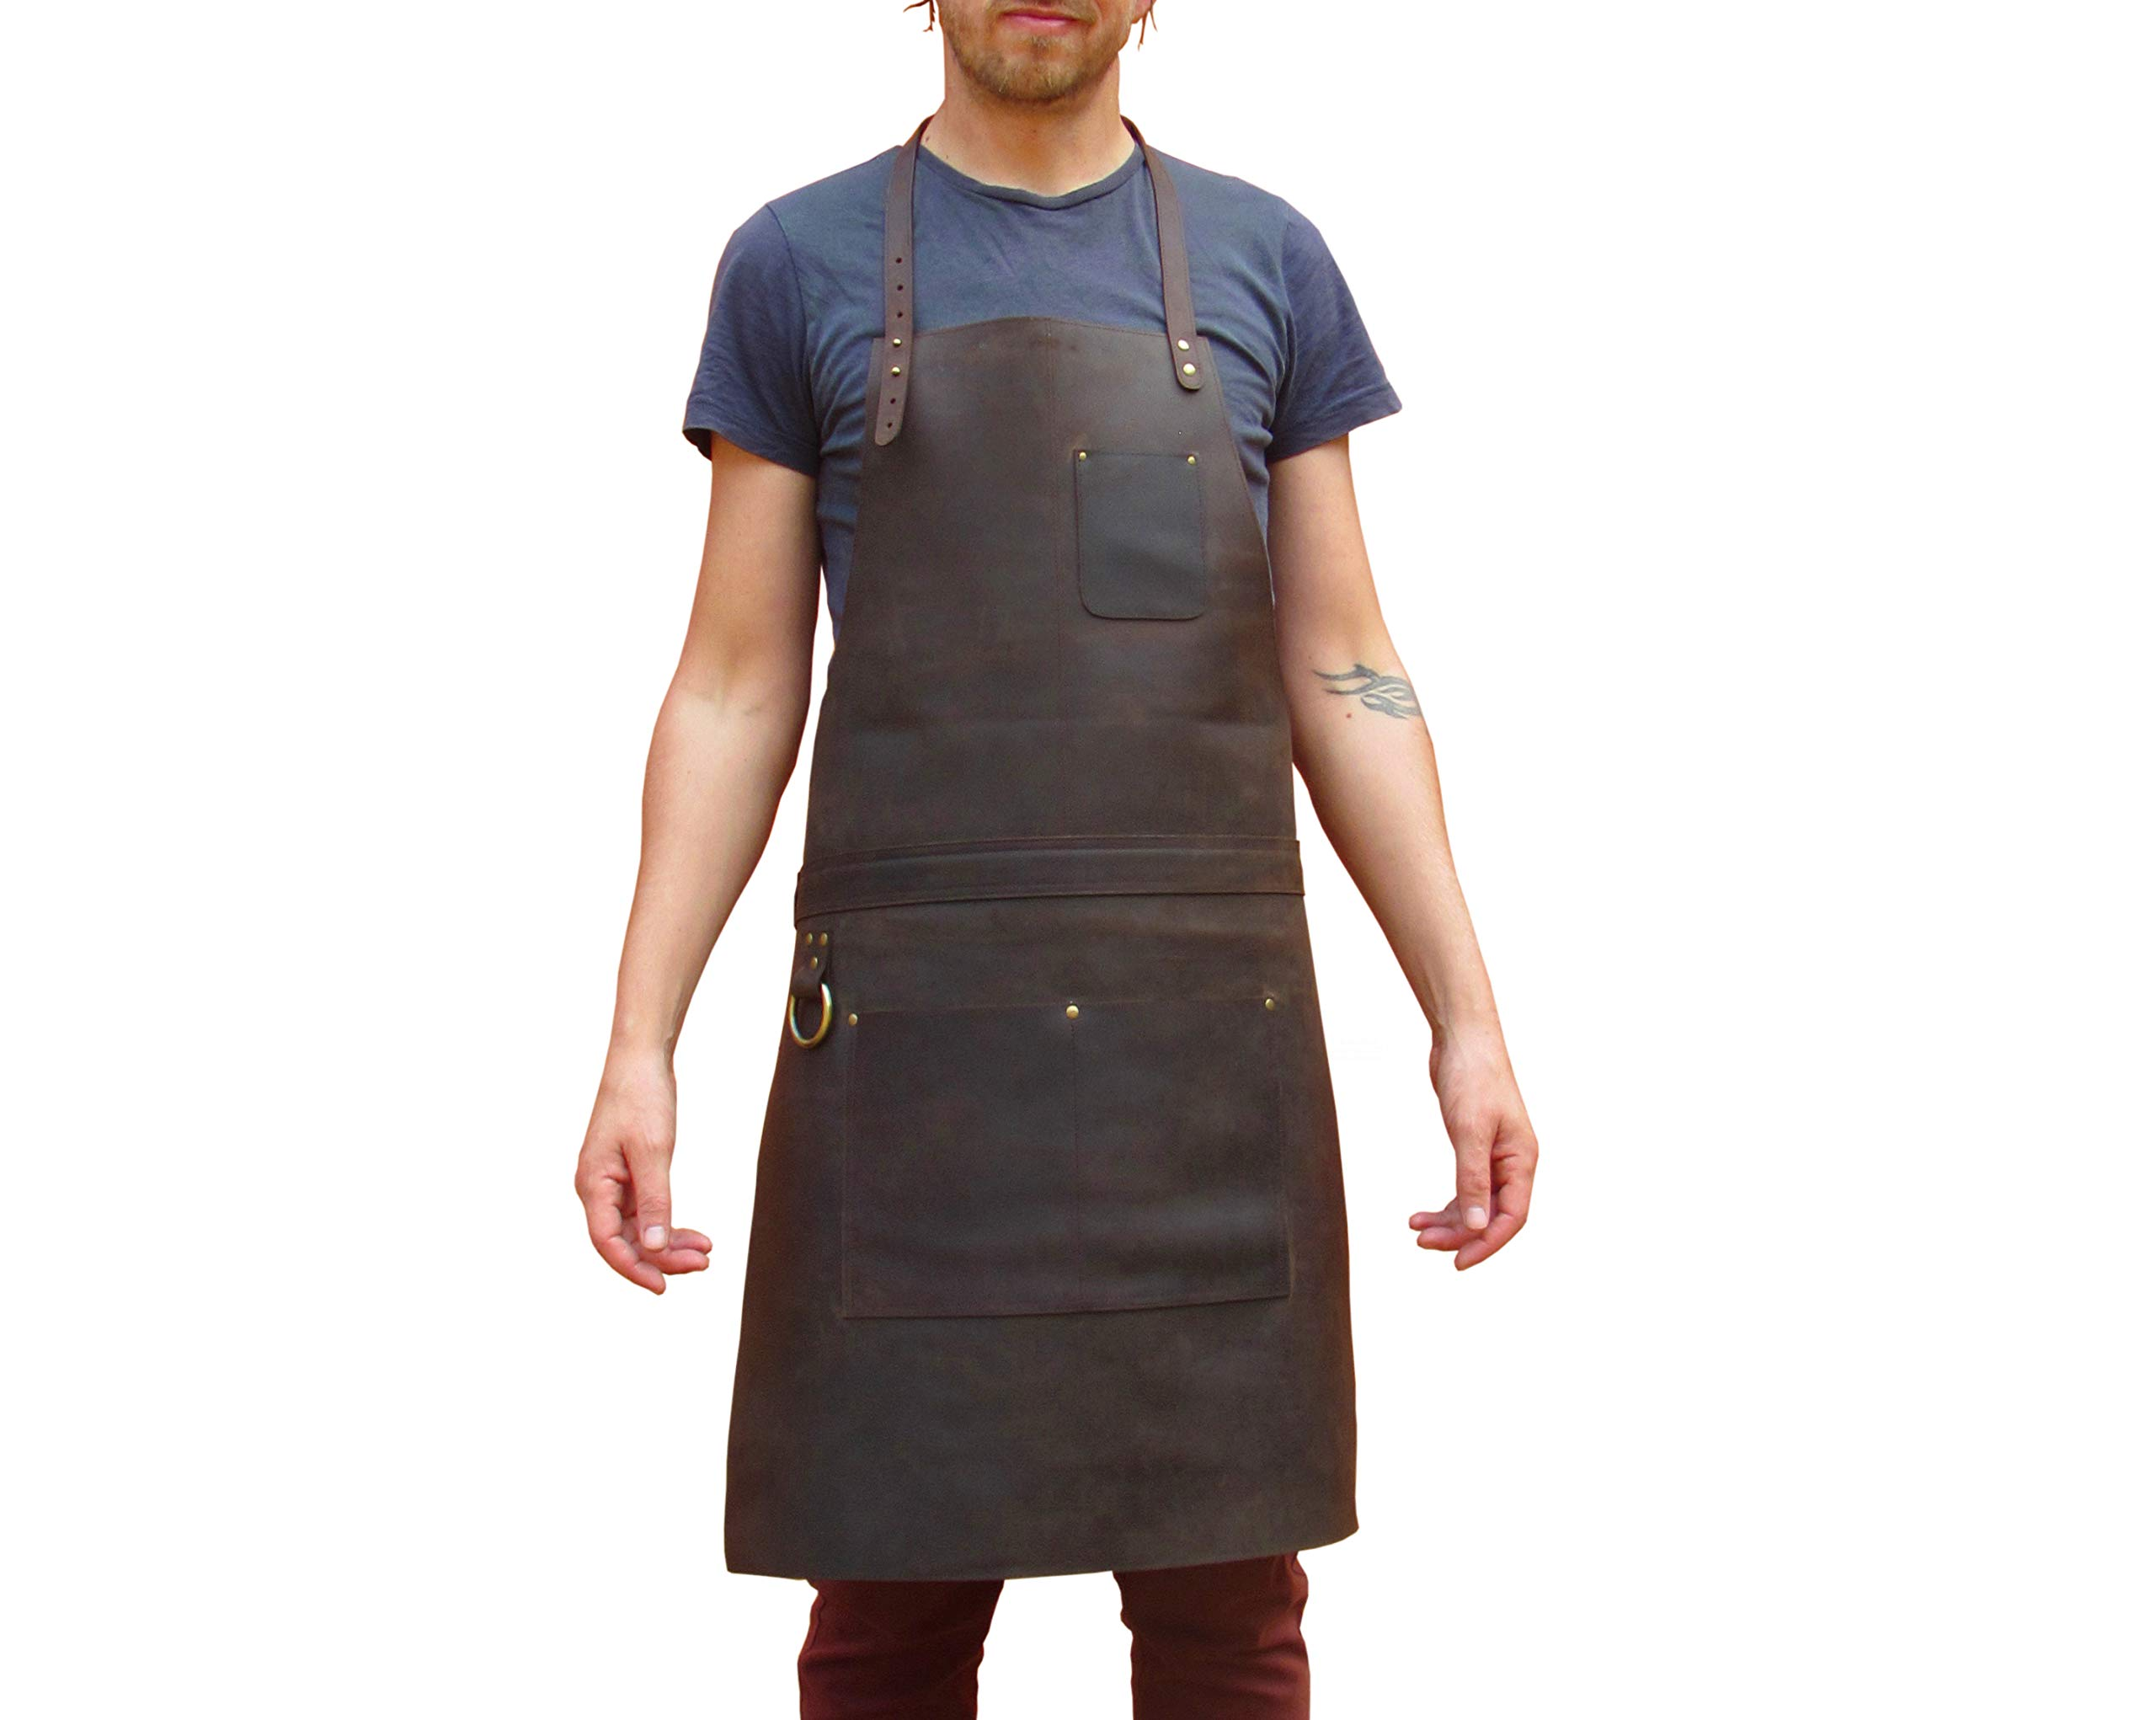 One Leaf Leather Work Apron (Chef, Butcher, Metalworker, Carpenter) - Tirel Deluxe (Brass Hardware) by Oneleaf